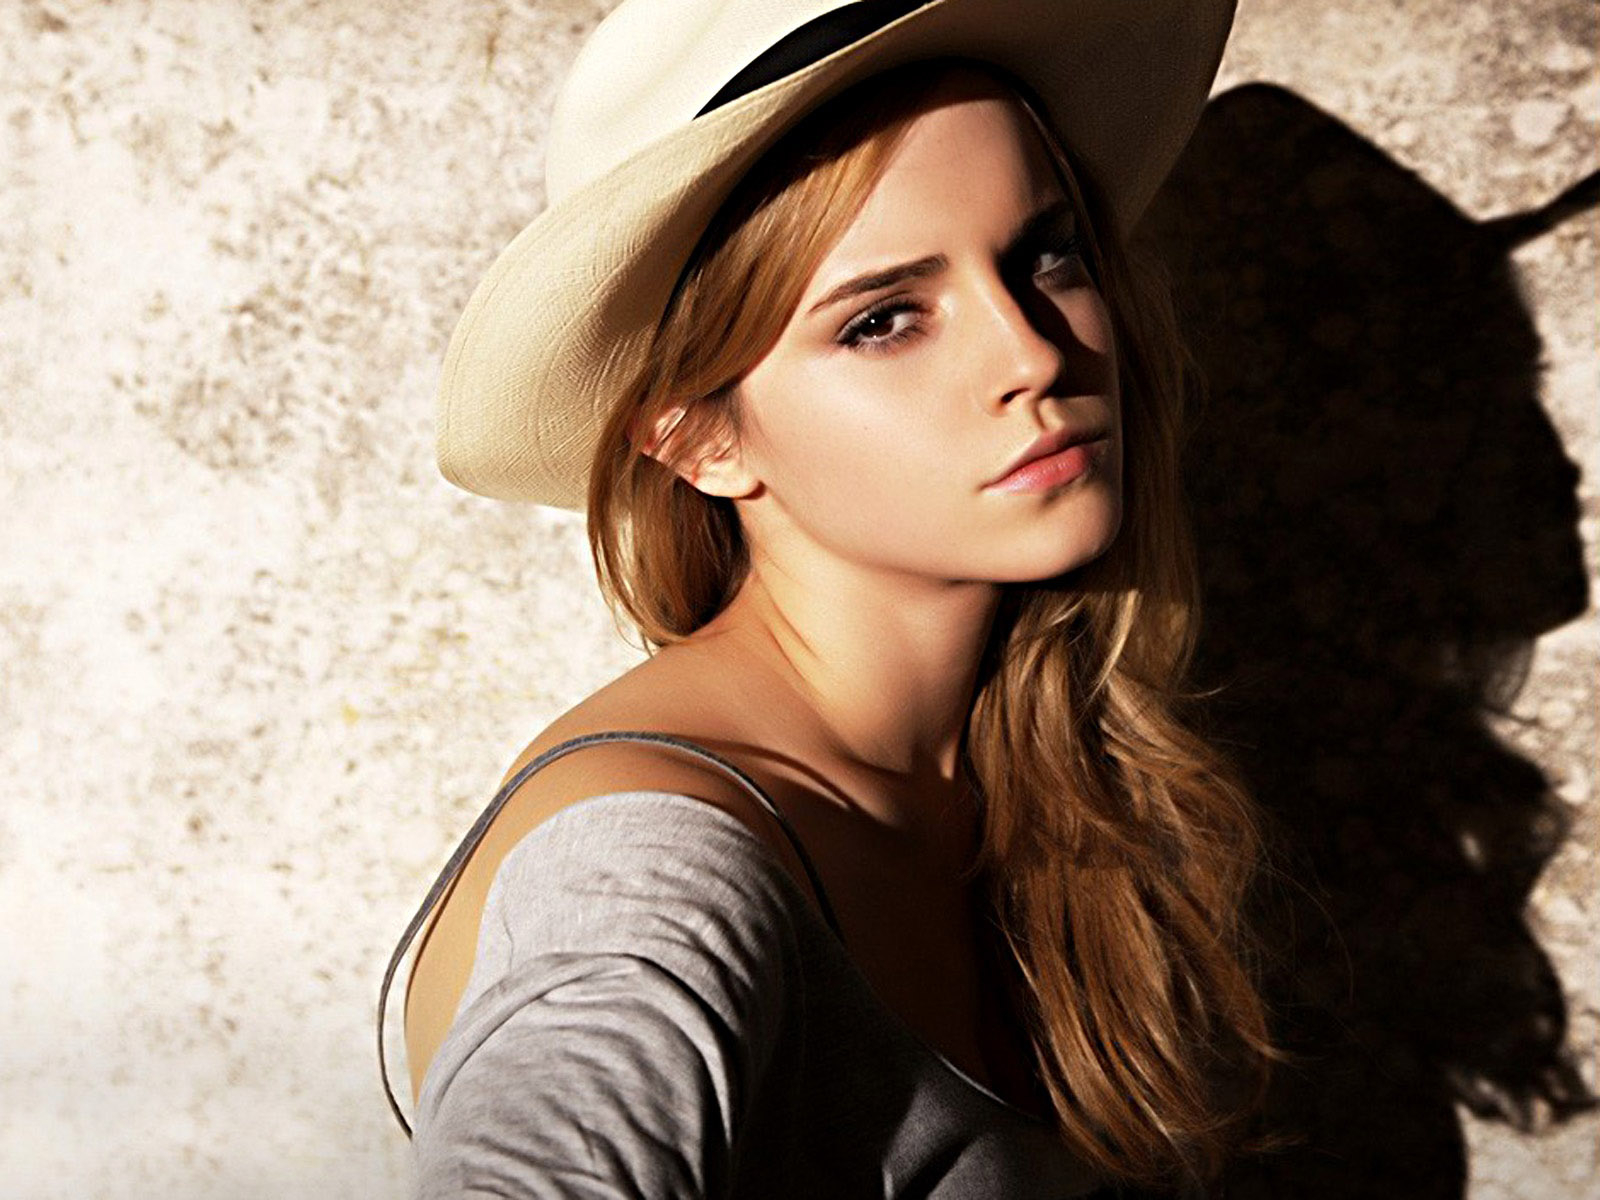 Sayou images Emma Watson Wallpapers HD wallpaper and background